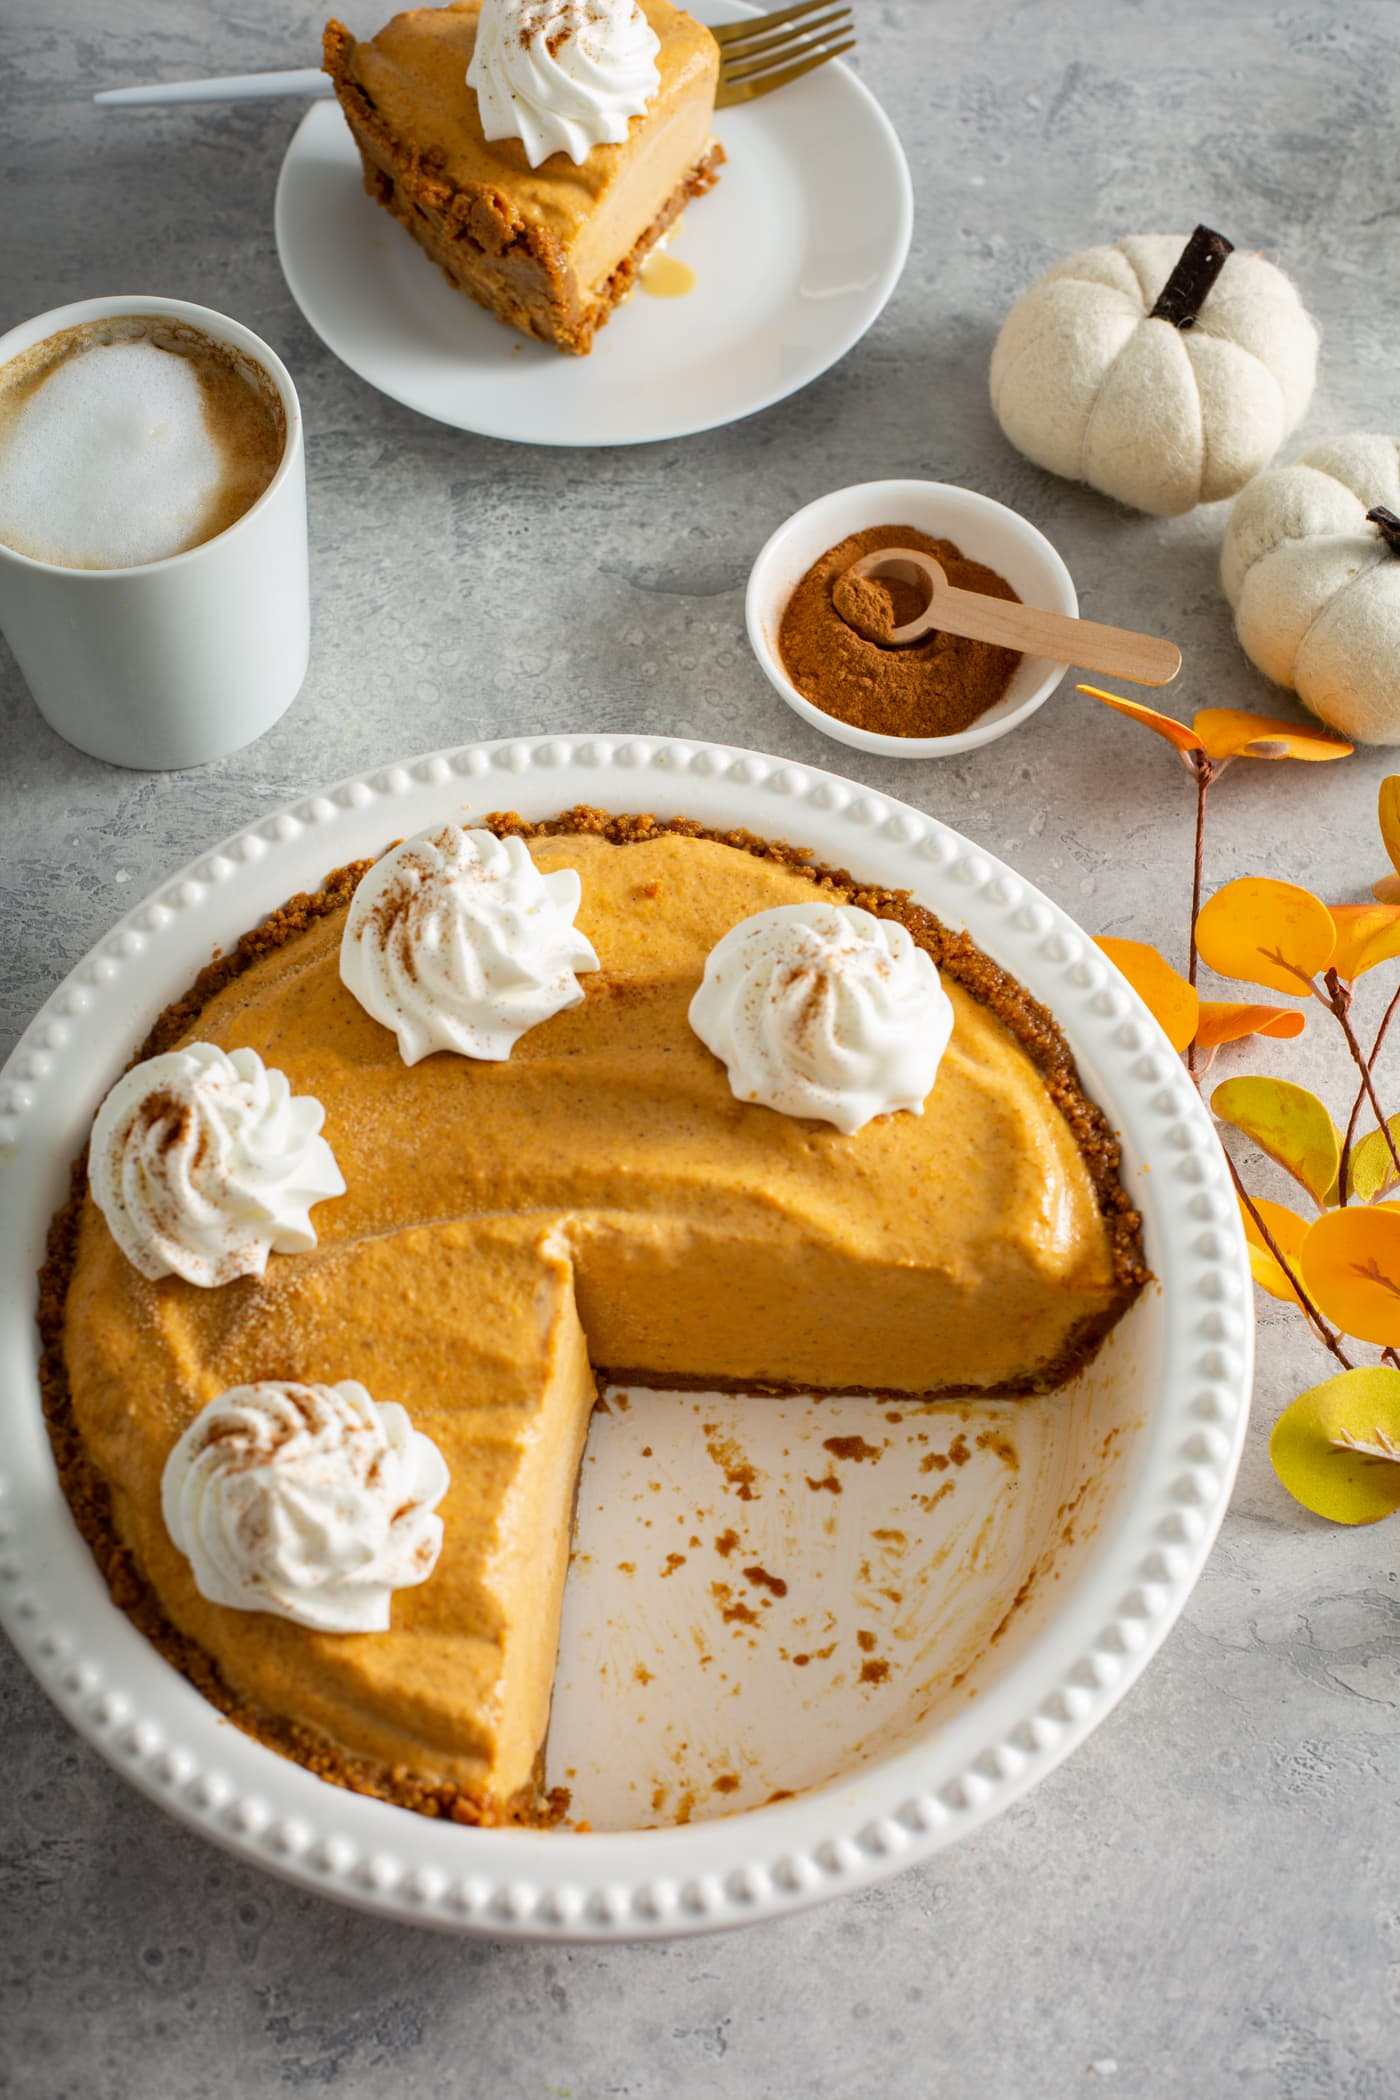 A white pie dish with part of a pumpkin ice cream pie that is topped with dollops of whipped cream sprinkled with cinnamon. There Is A white mug with a drink topped with whipped cream, a small dish with a wooden spoon filled with cinnamon, two tiny white pumpkins and a dessert plate with a slice of pie in the background.